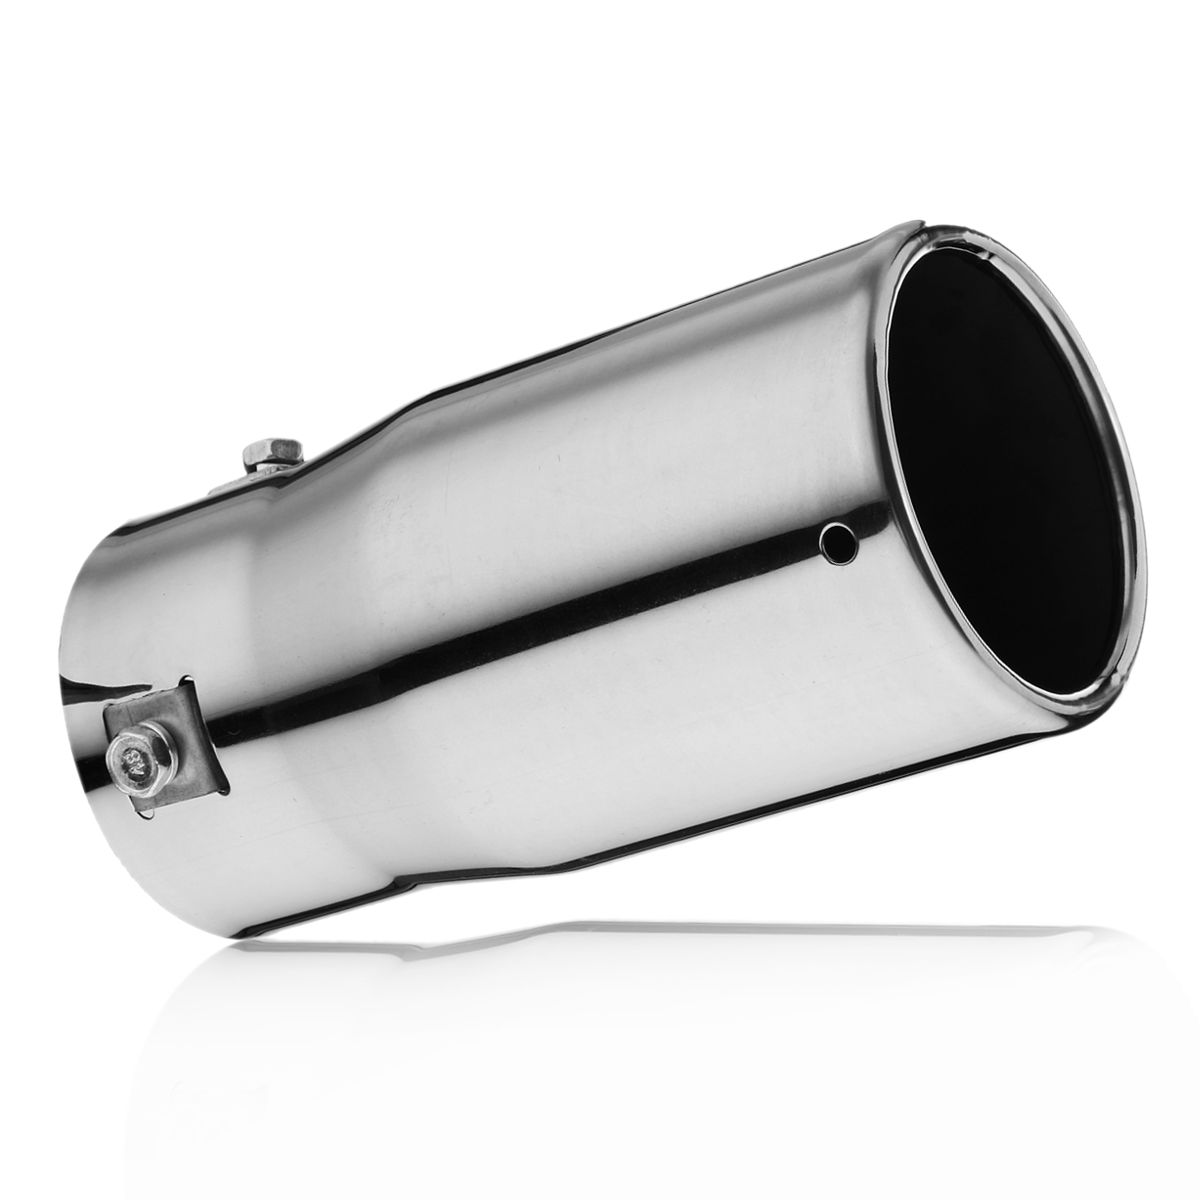 Inlet-70mm Outlet-75mm Car Tail Exhaust Pipe Chrome End Trim Stainless Steel Muffler Universal